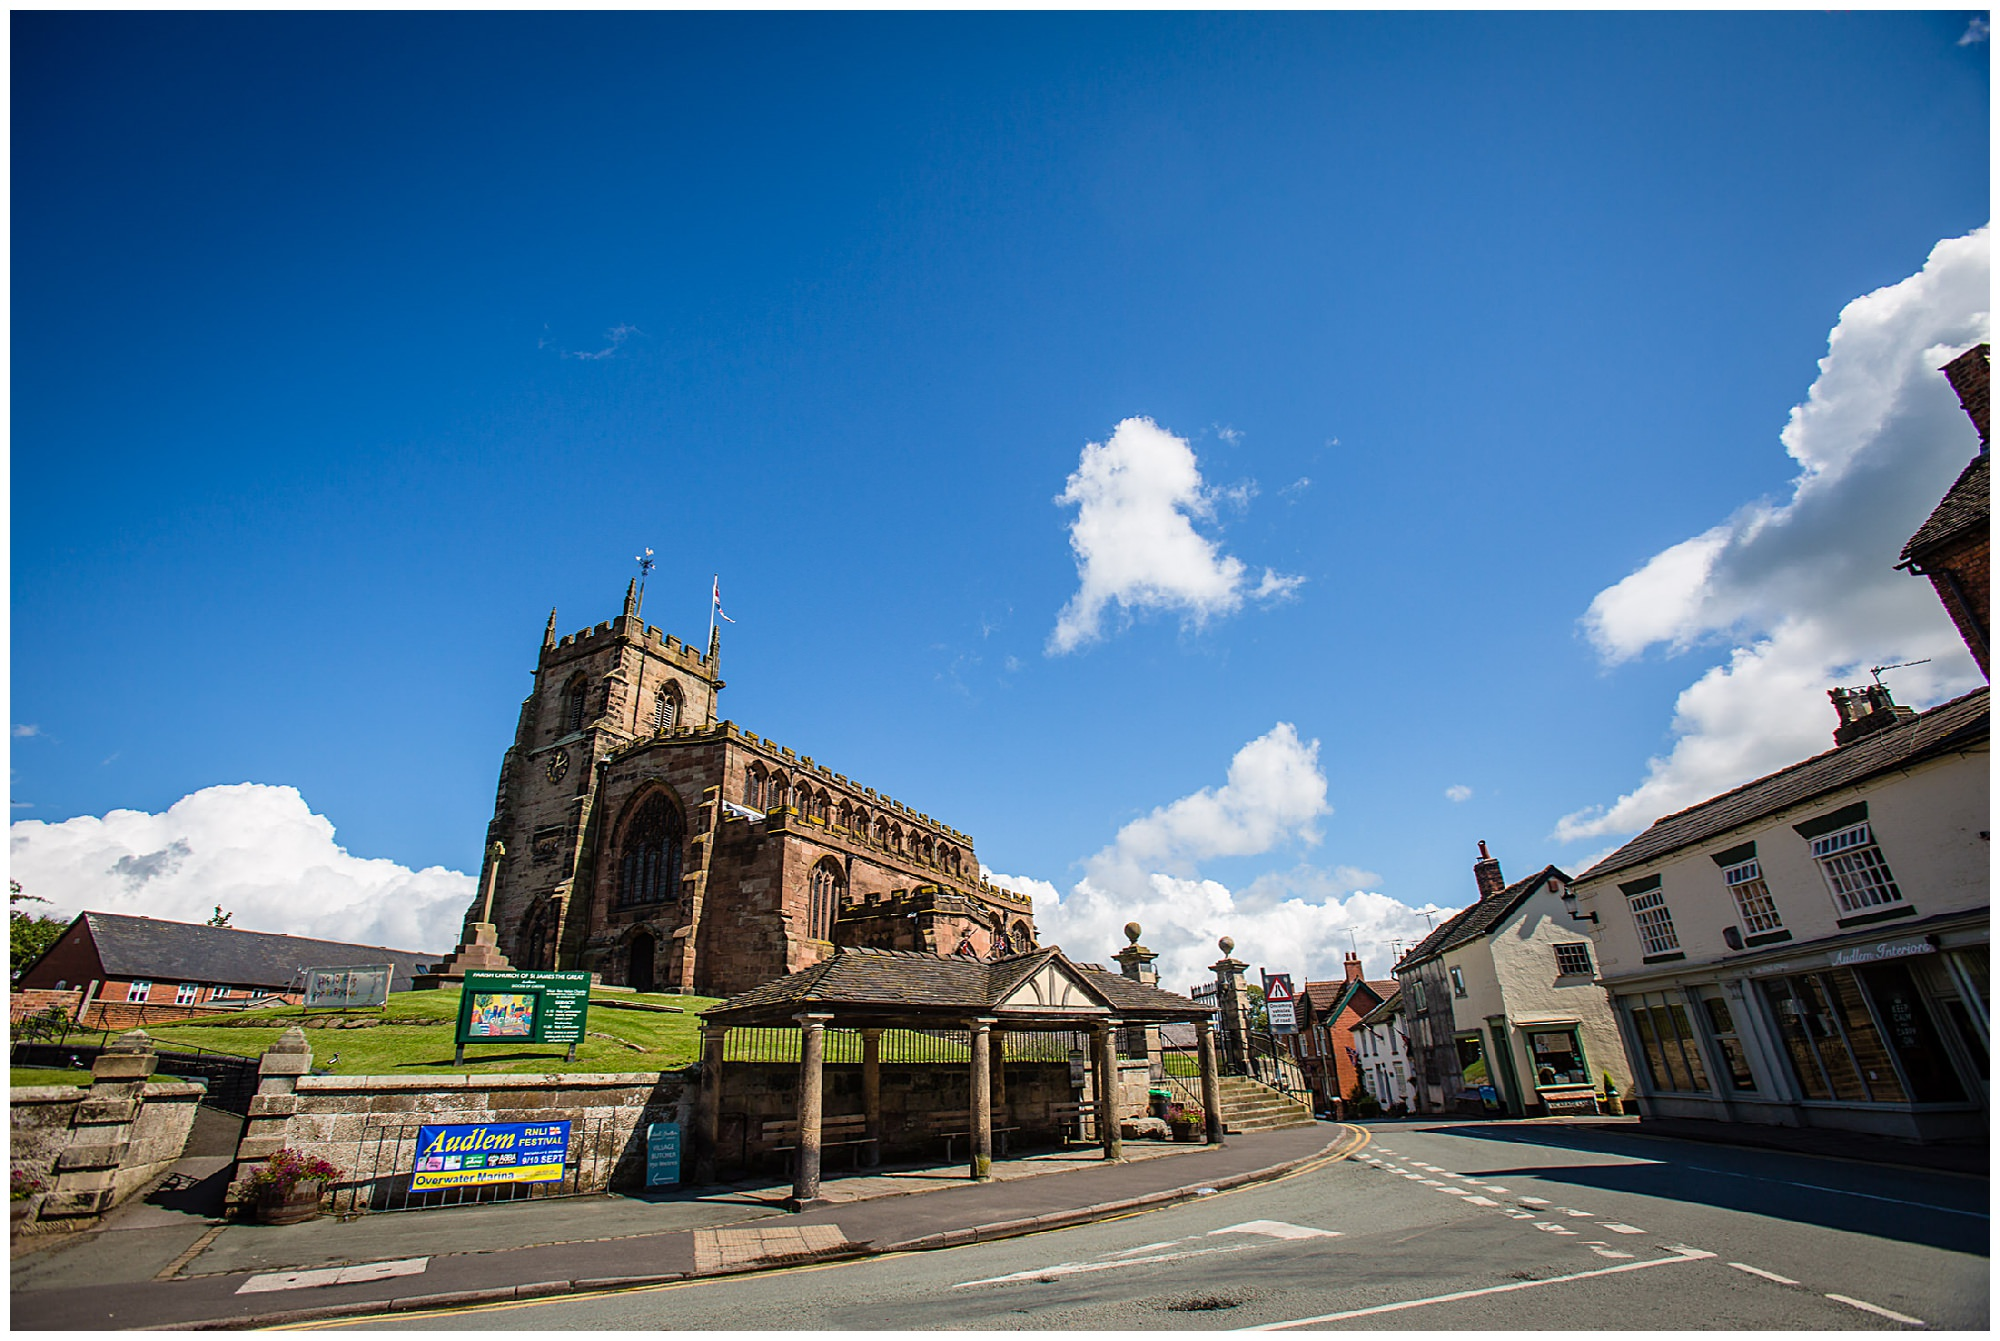 St. James' Church Audlem Wedding Photography- church with blue sky backdrop